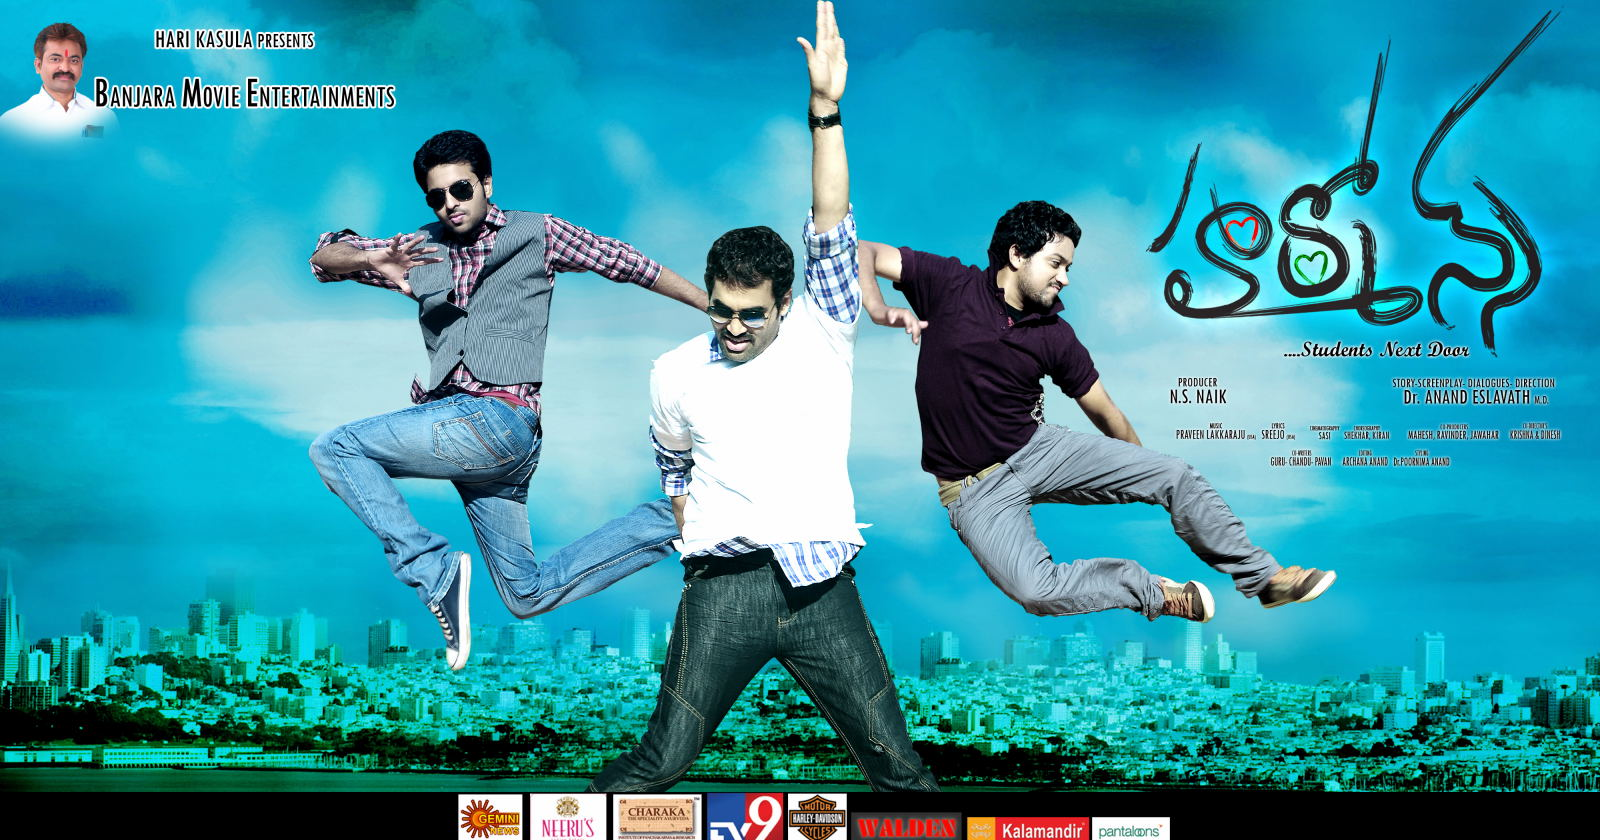 http://2.bp.blogspot.com/-1tfuWeCXXN8/T_H5_0YTP4I/AAAAAAAAdgo/dUhBDJWEj_4/s1600/Hormones+Telugu+Movie+Wallpapers+Cinema65+%2819%29.JPG